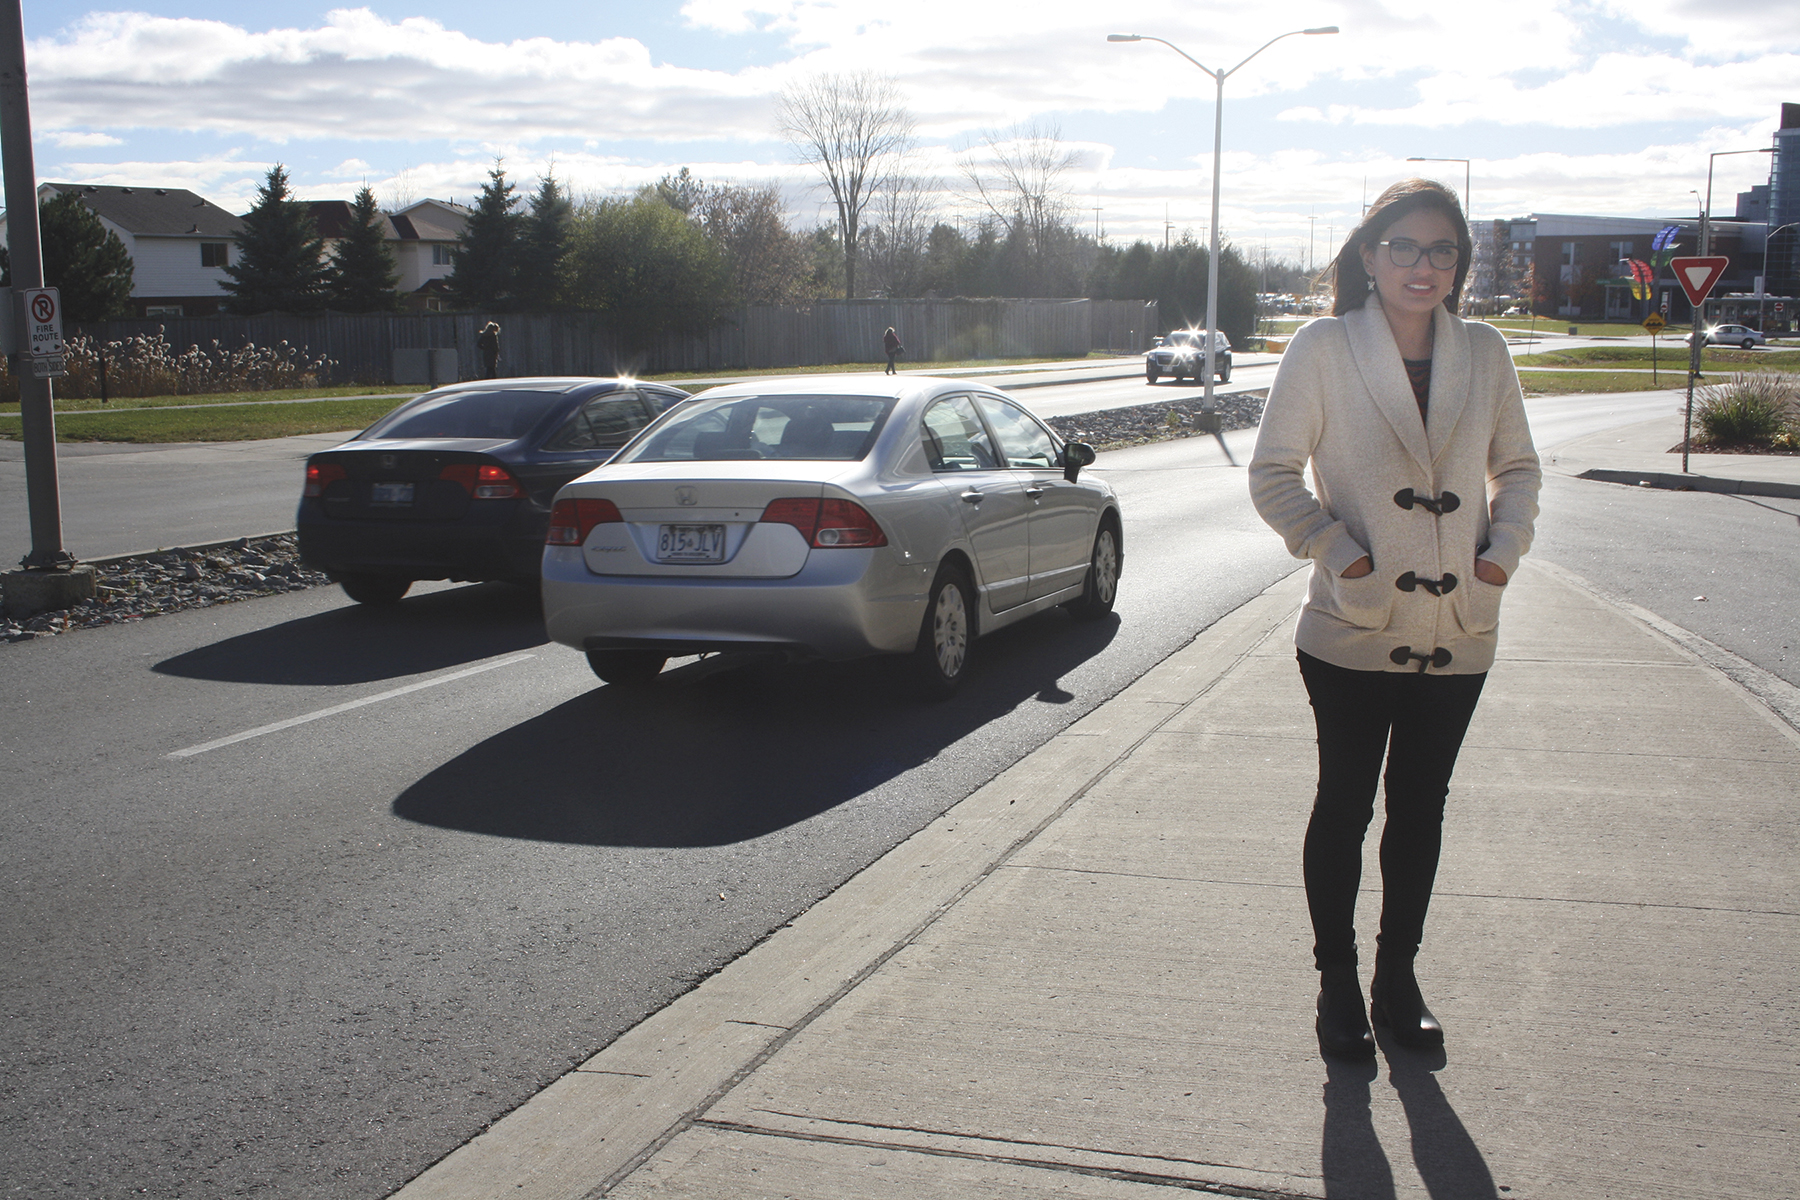 Claudia Cubas Quiroz says the biggest difference since moving from Peru to Whitby has been the flow of traffic.